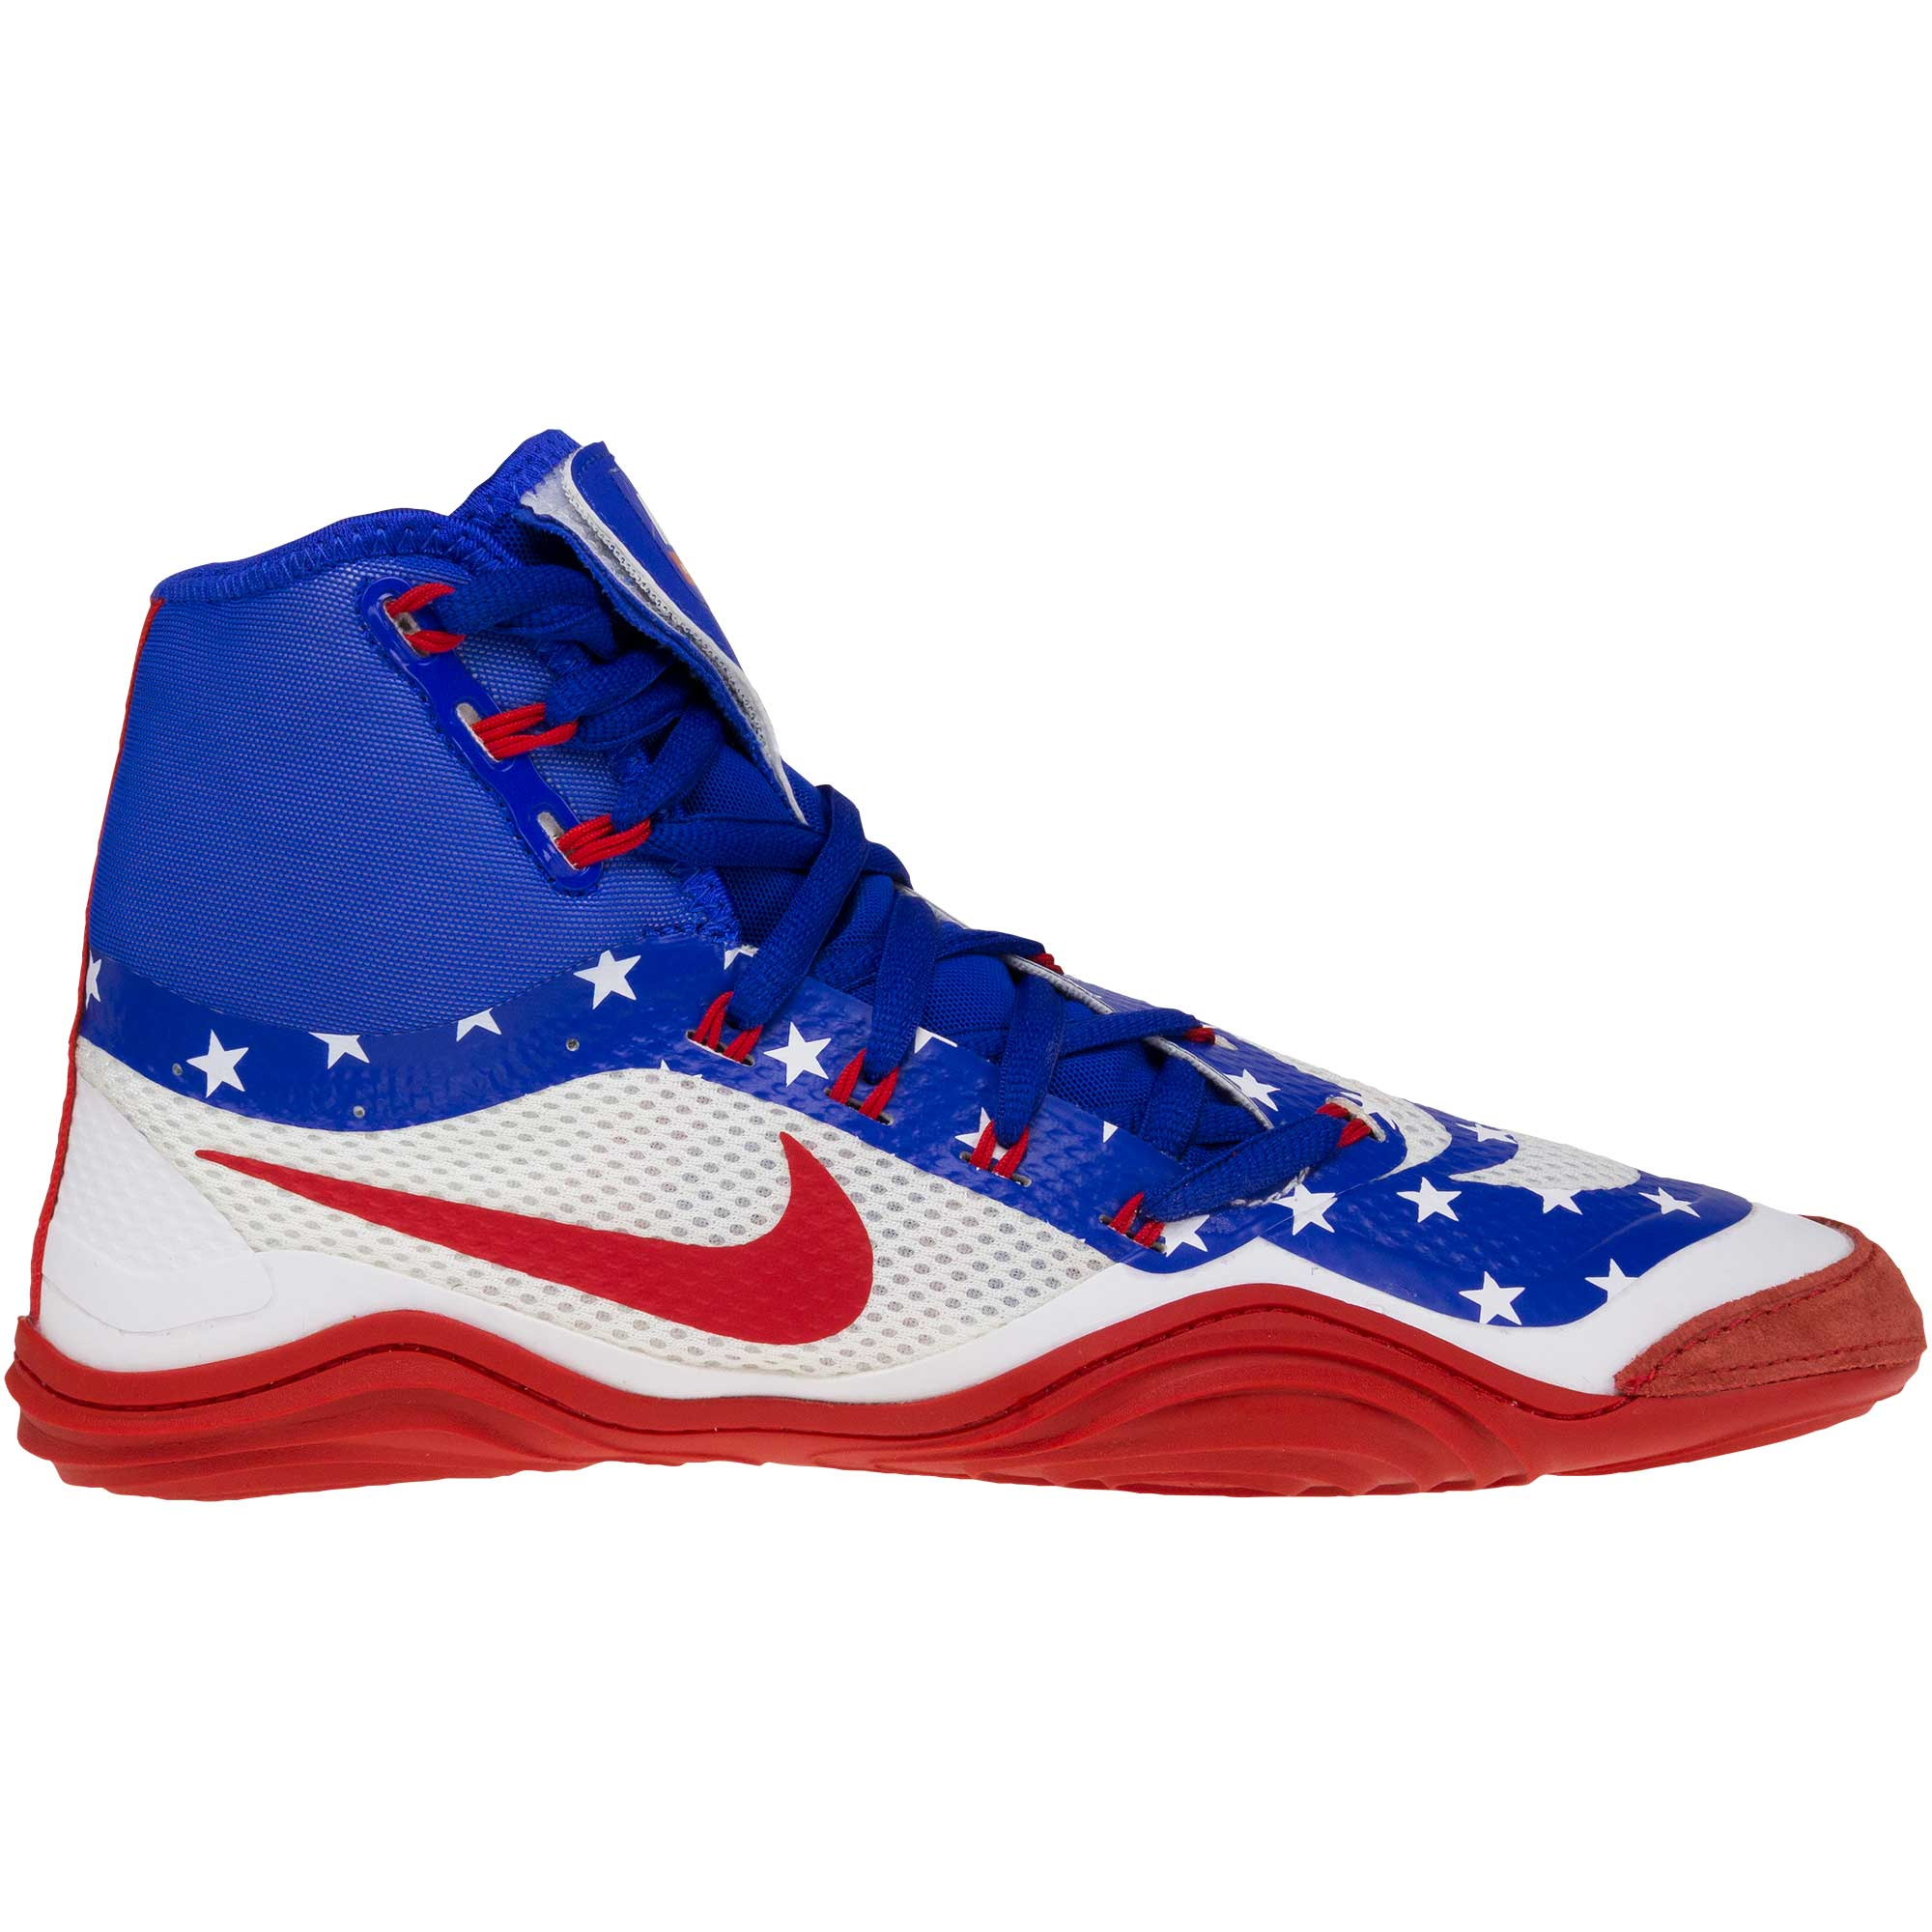 Nike Hypersweep Shoes Wrestlingmart Free Shipping